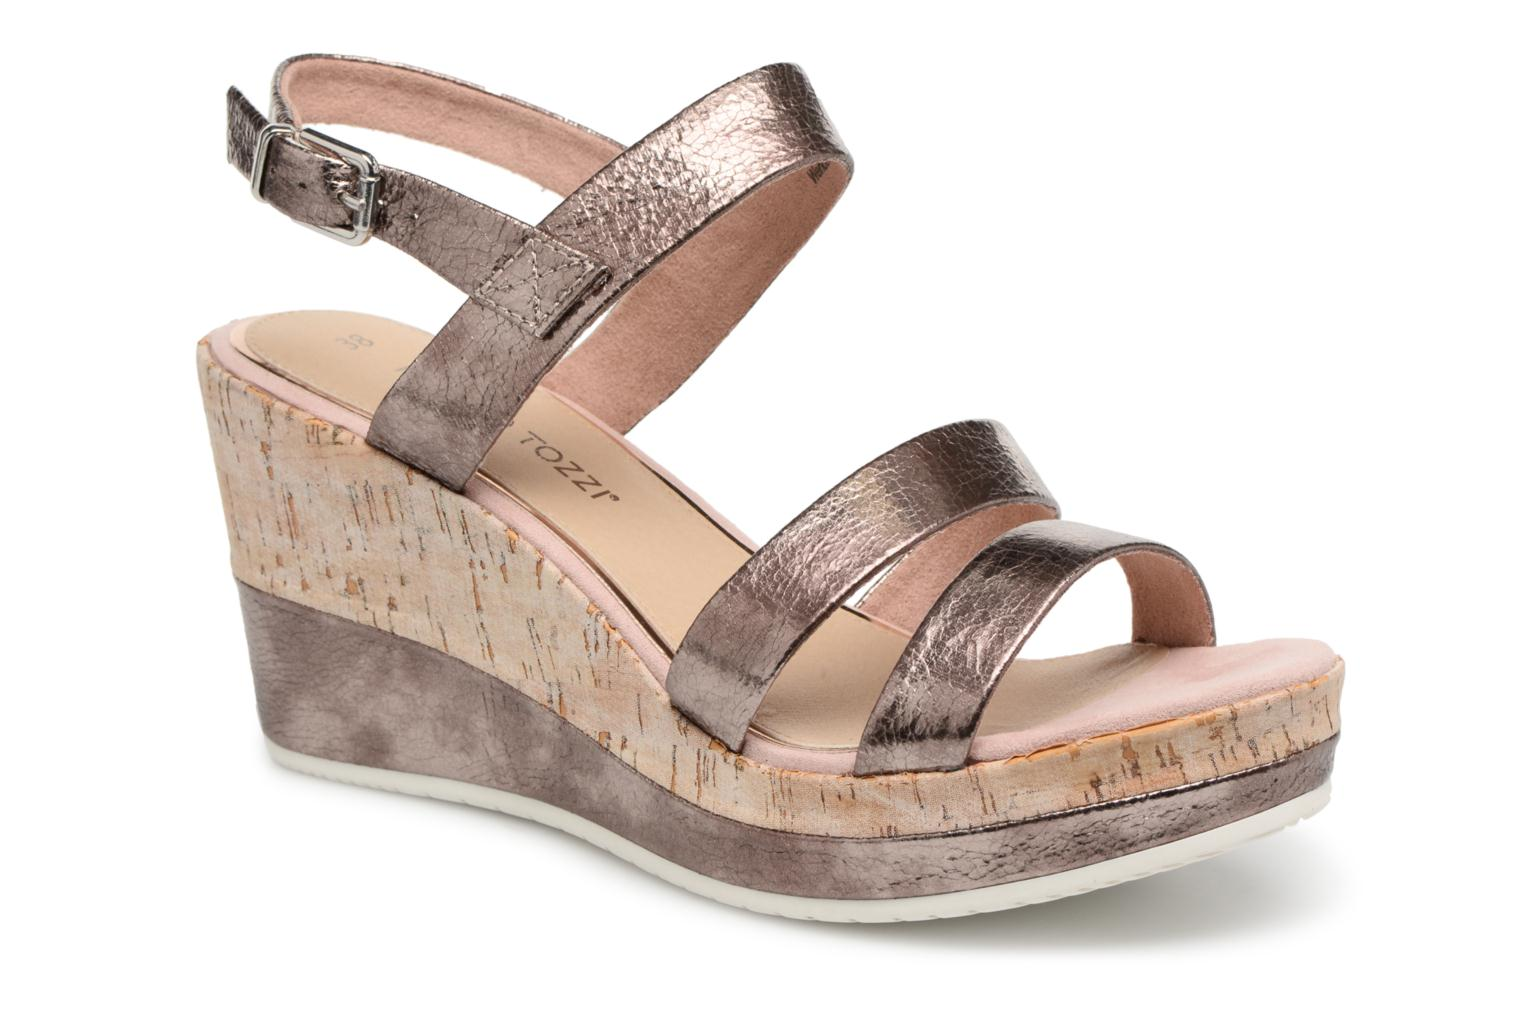 Marques Chaussure femme Marco Tozzi femme Wimos Rose Metallic